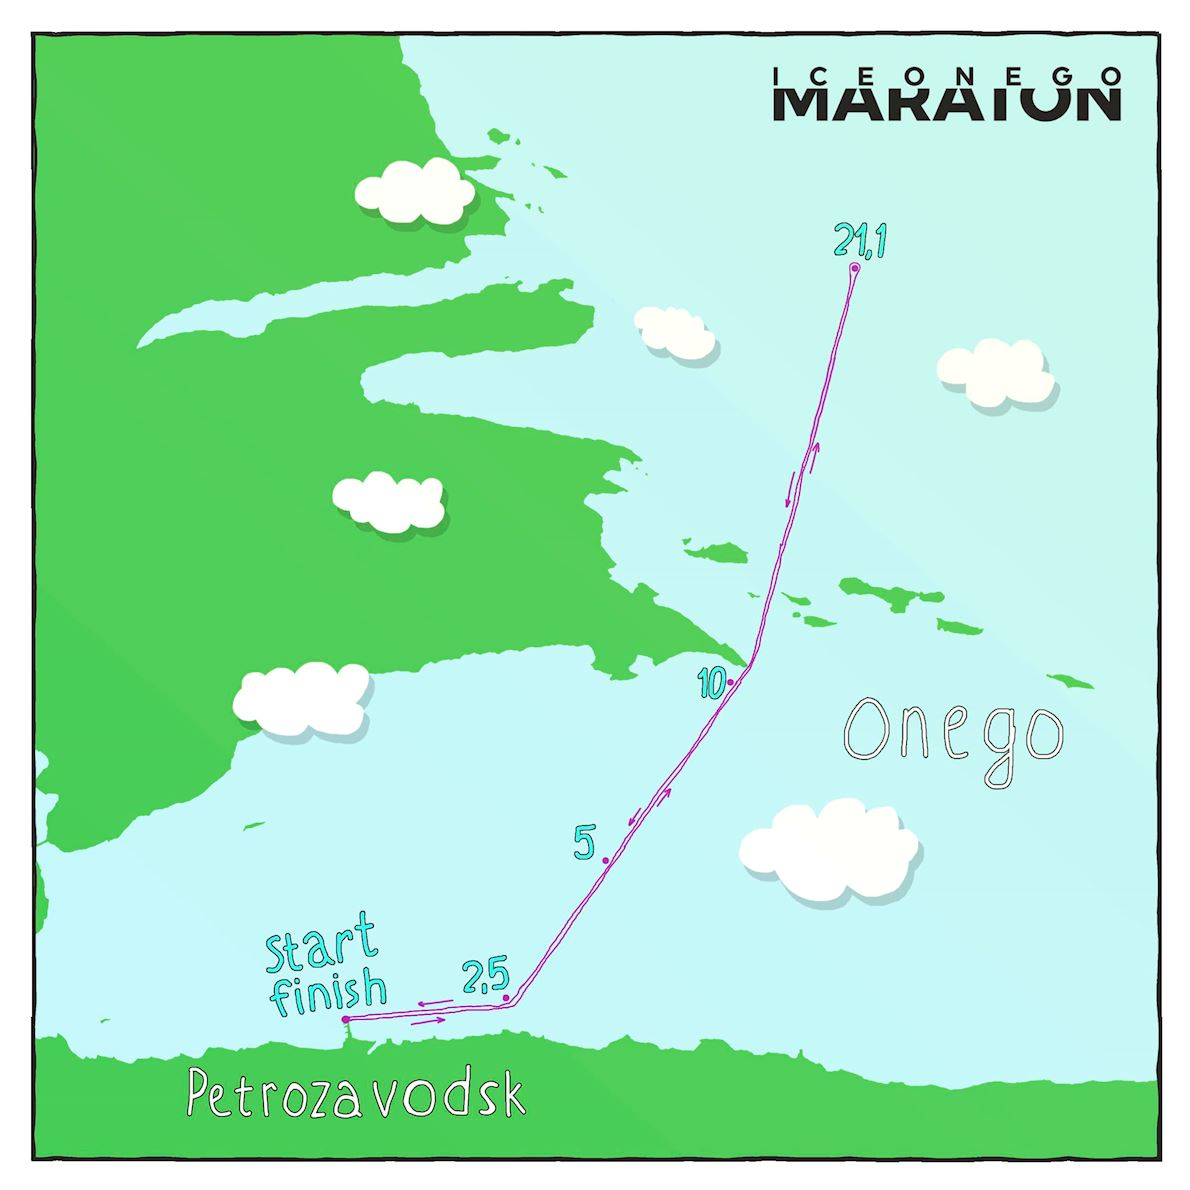 Ice Onego Maraton Route Map